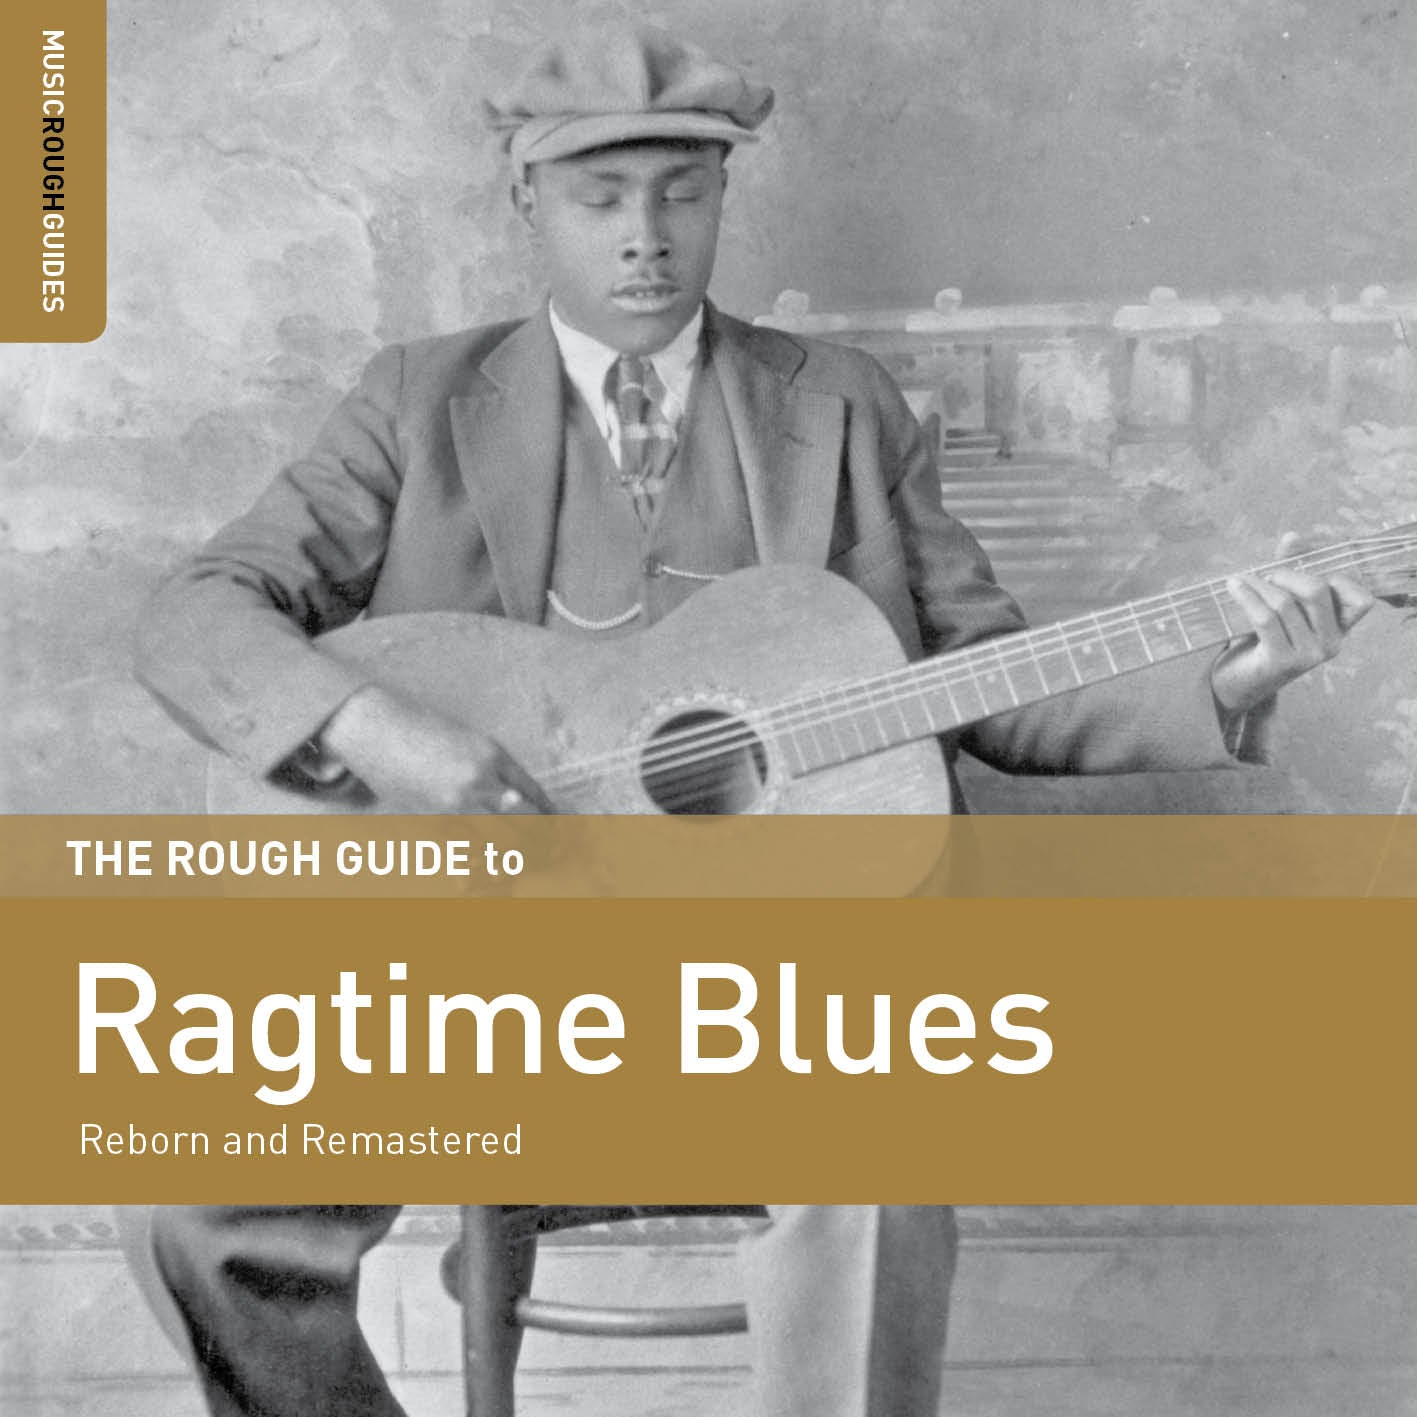 History of ragtime music